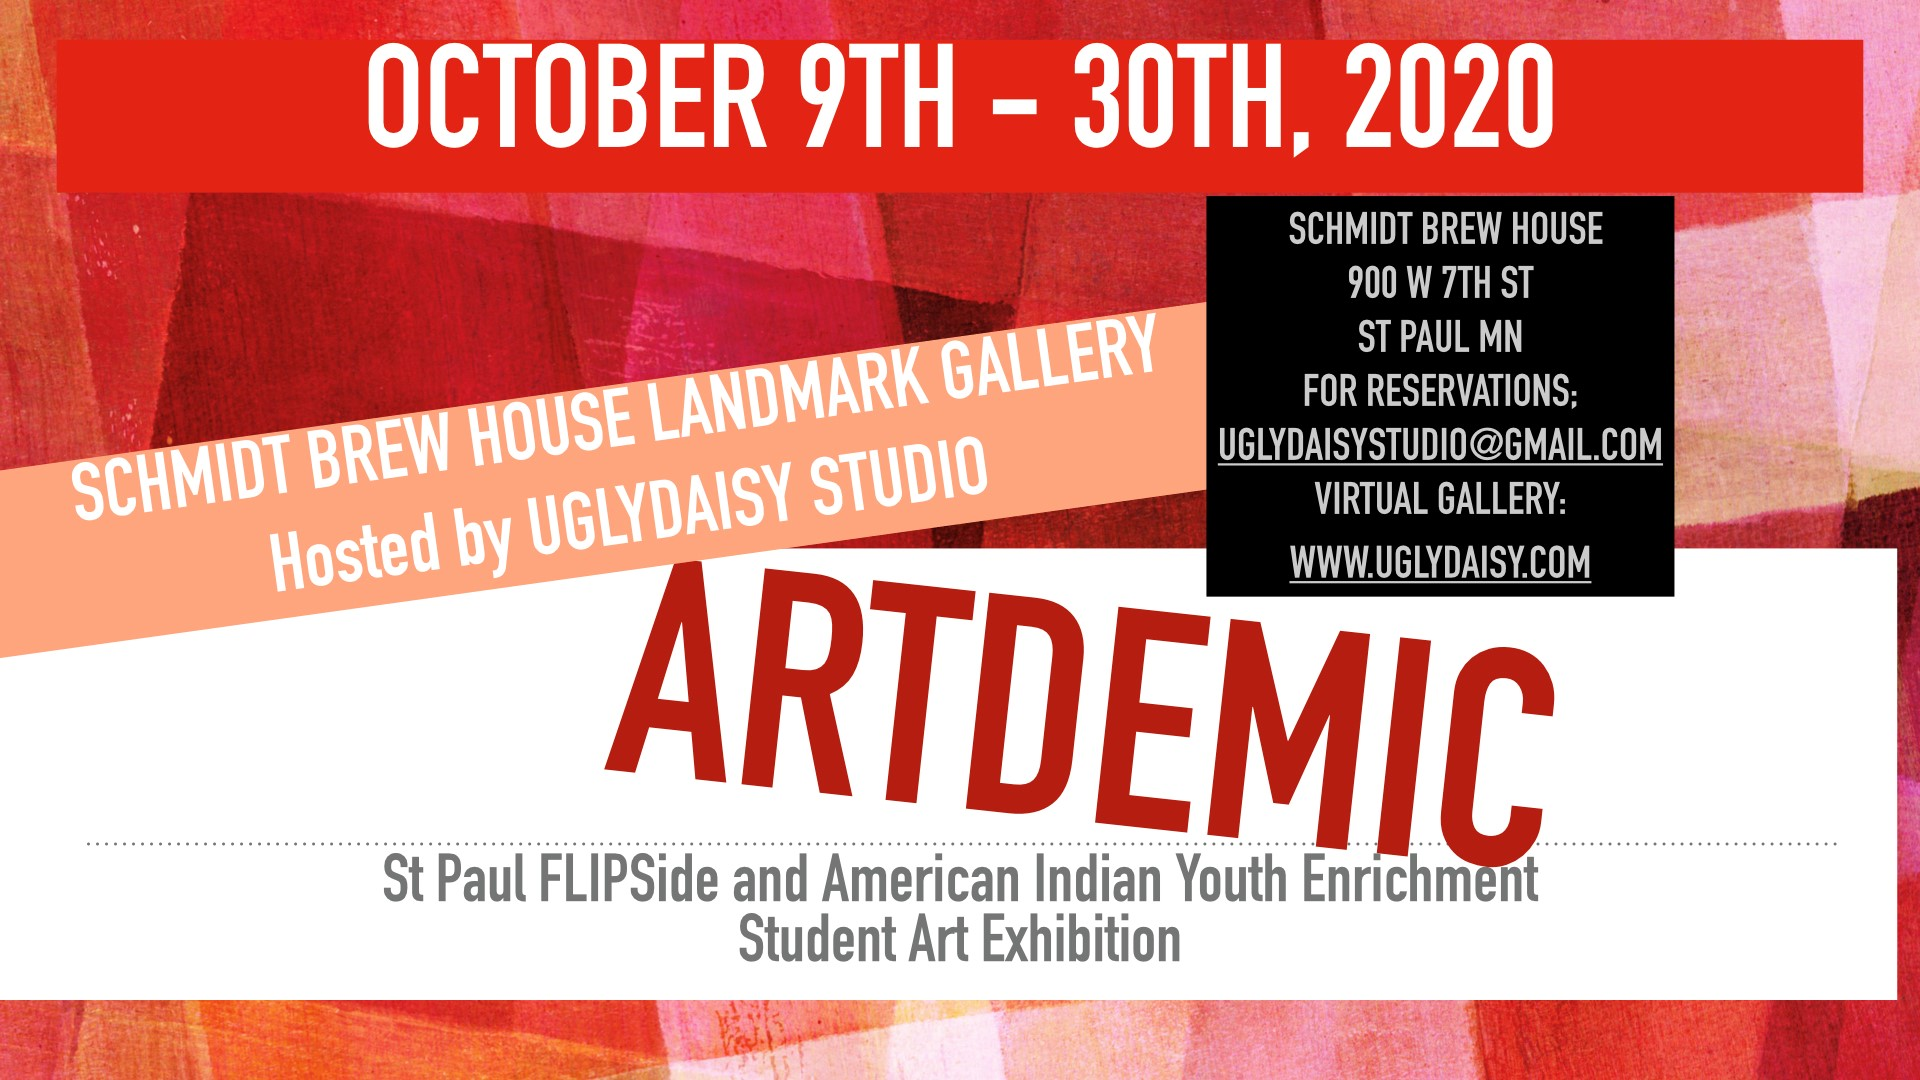 Artdemic Student Exhibition Oct 9th – 30th Schmidt Artist Loft Landmark Gallery-                VIEW ART BY THE ARTDEMIC LINK IN THE MENU